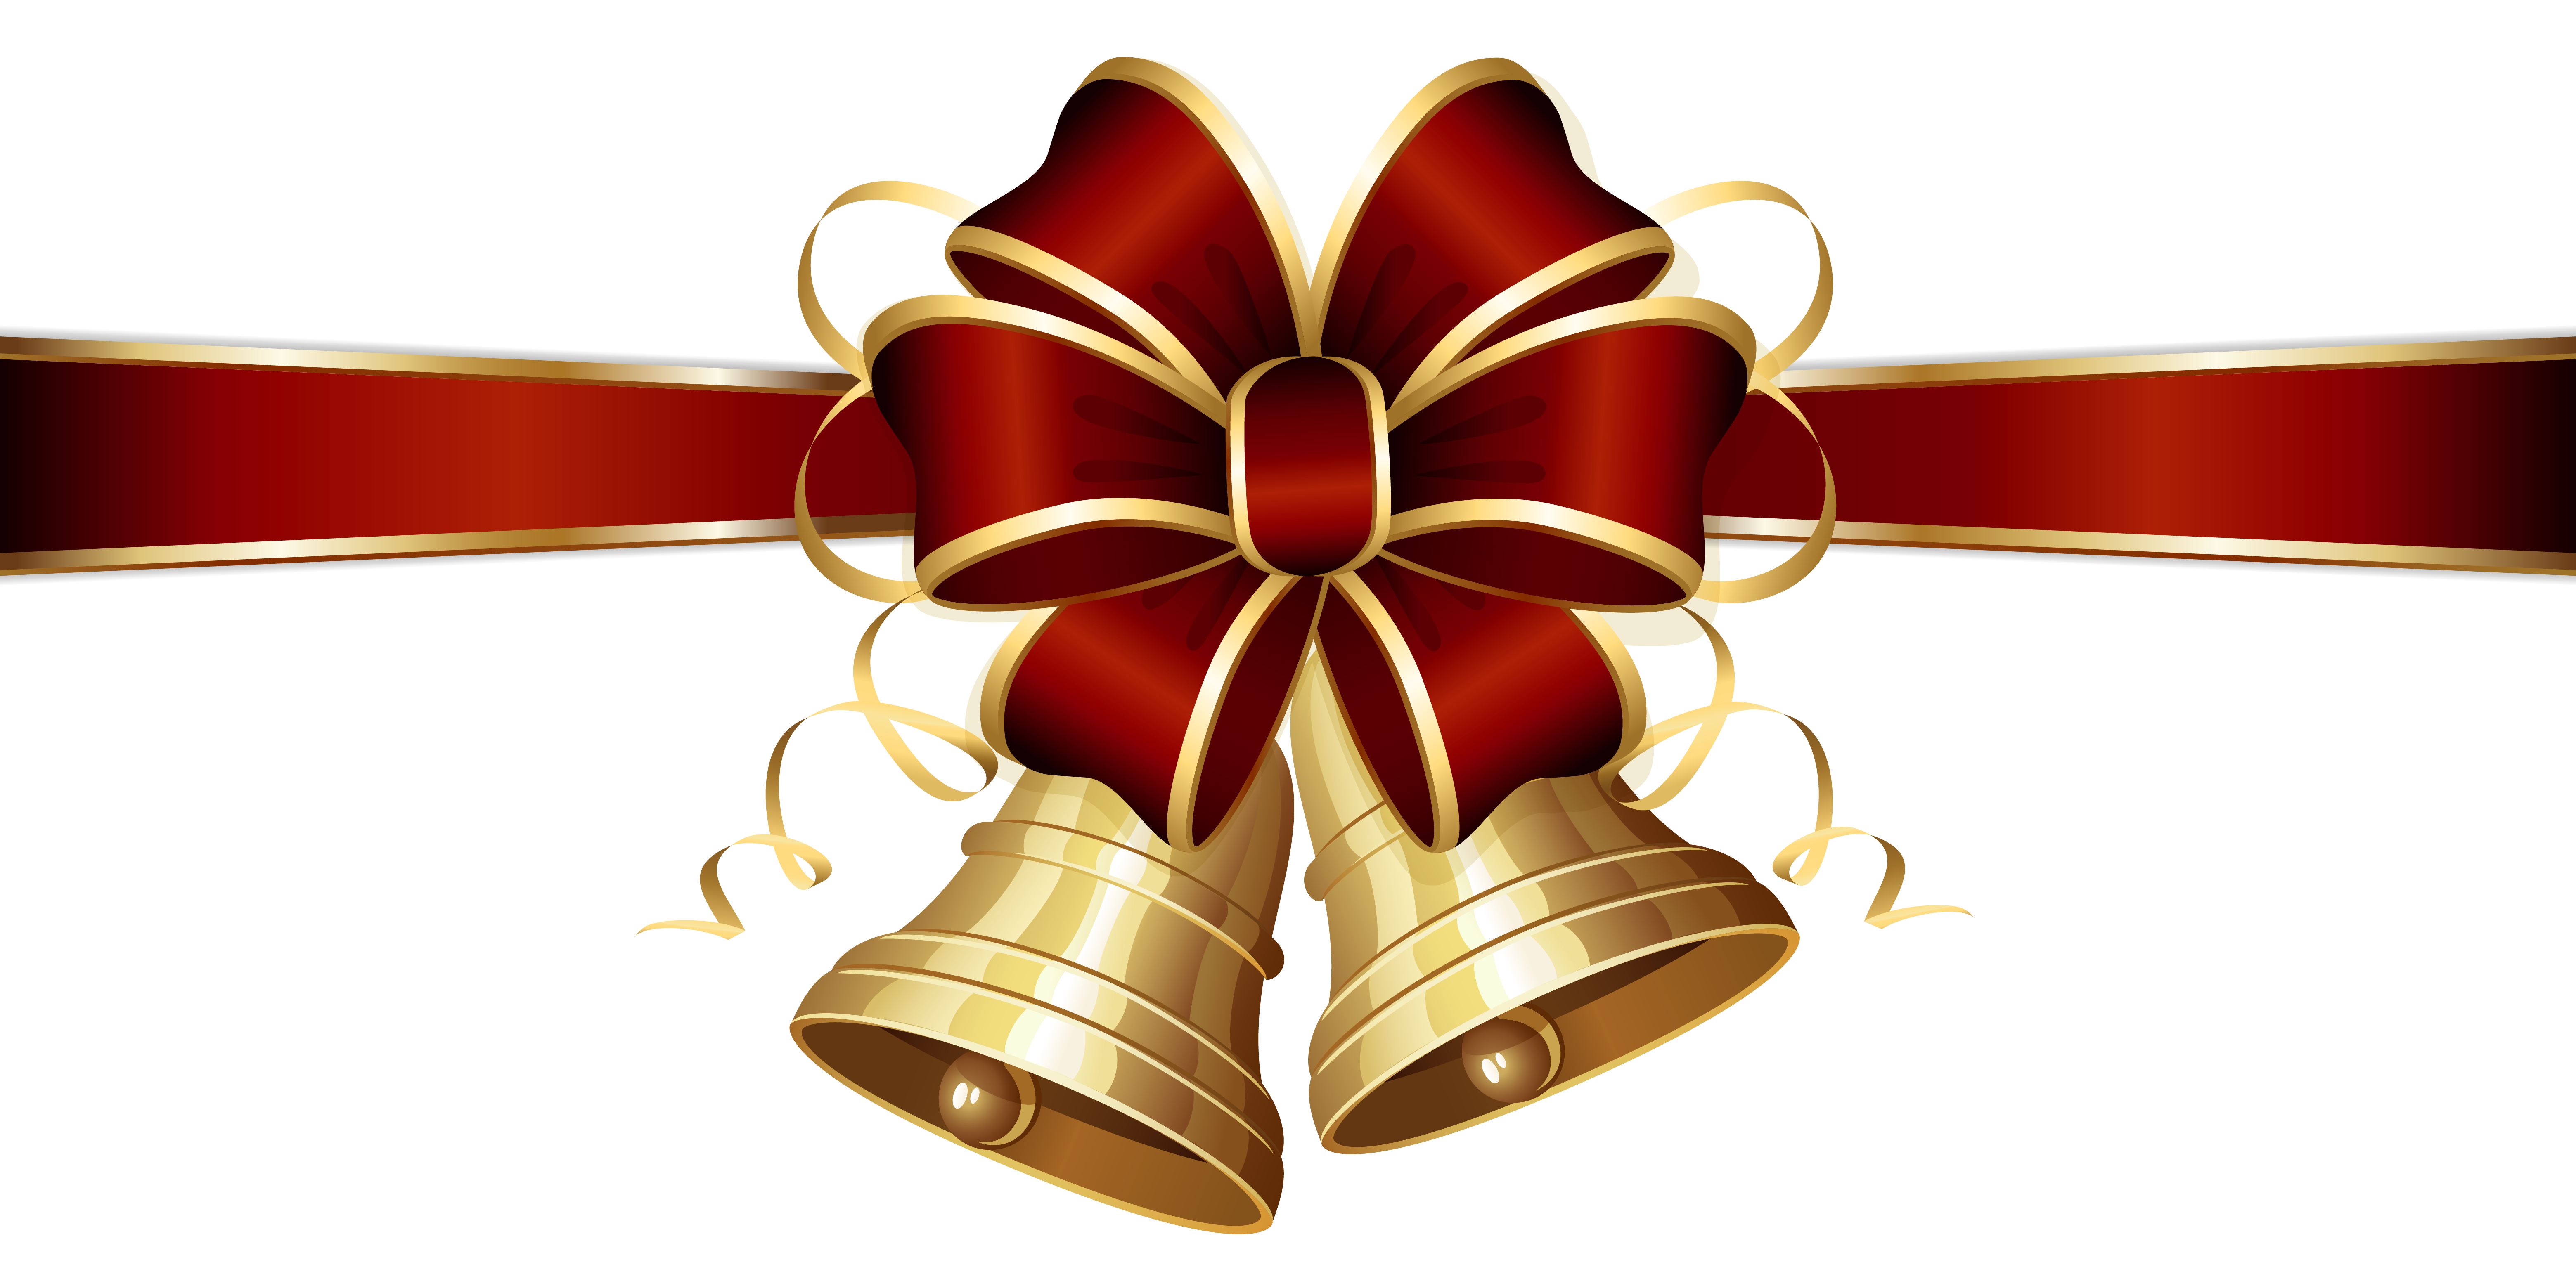 Christmas Bells and Red Bow PNG Clipart Image.